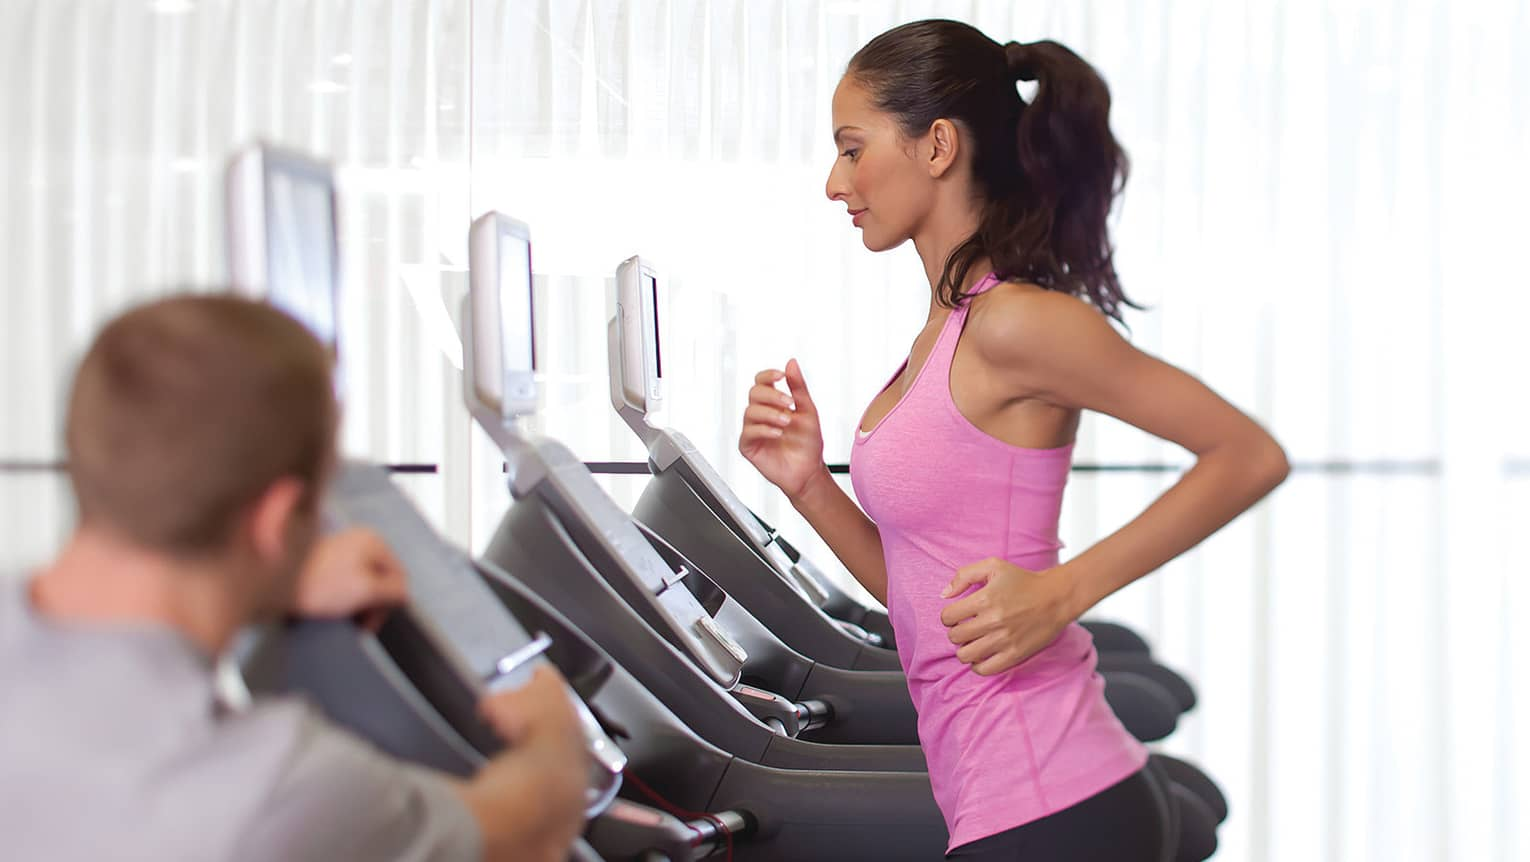 Woman in pink sleeveless shirt and ponytail runs on treadmill as personal trainer watches